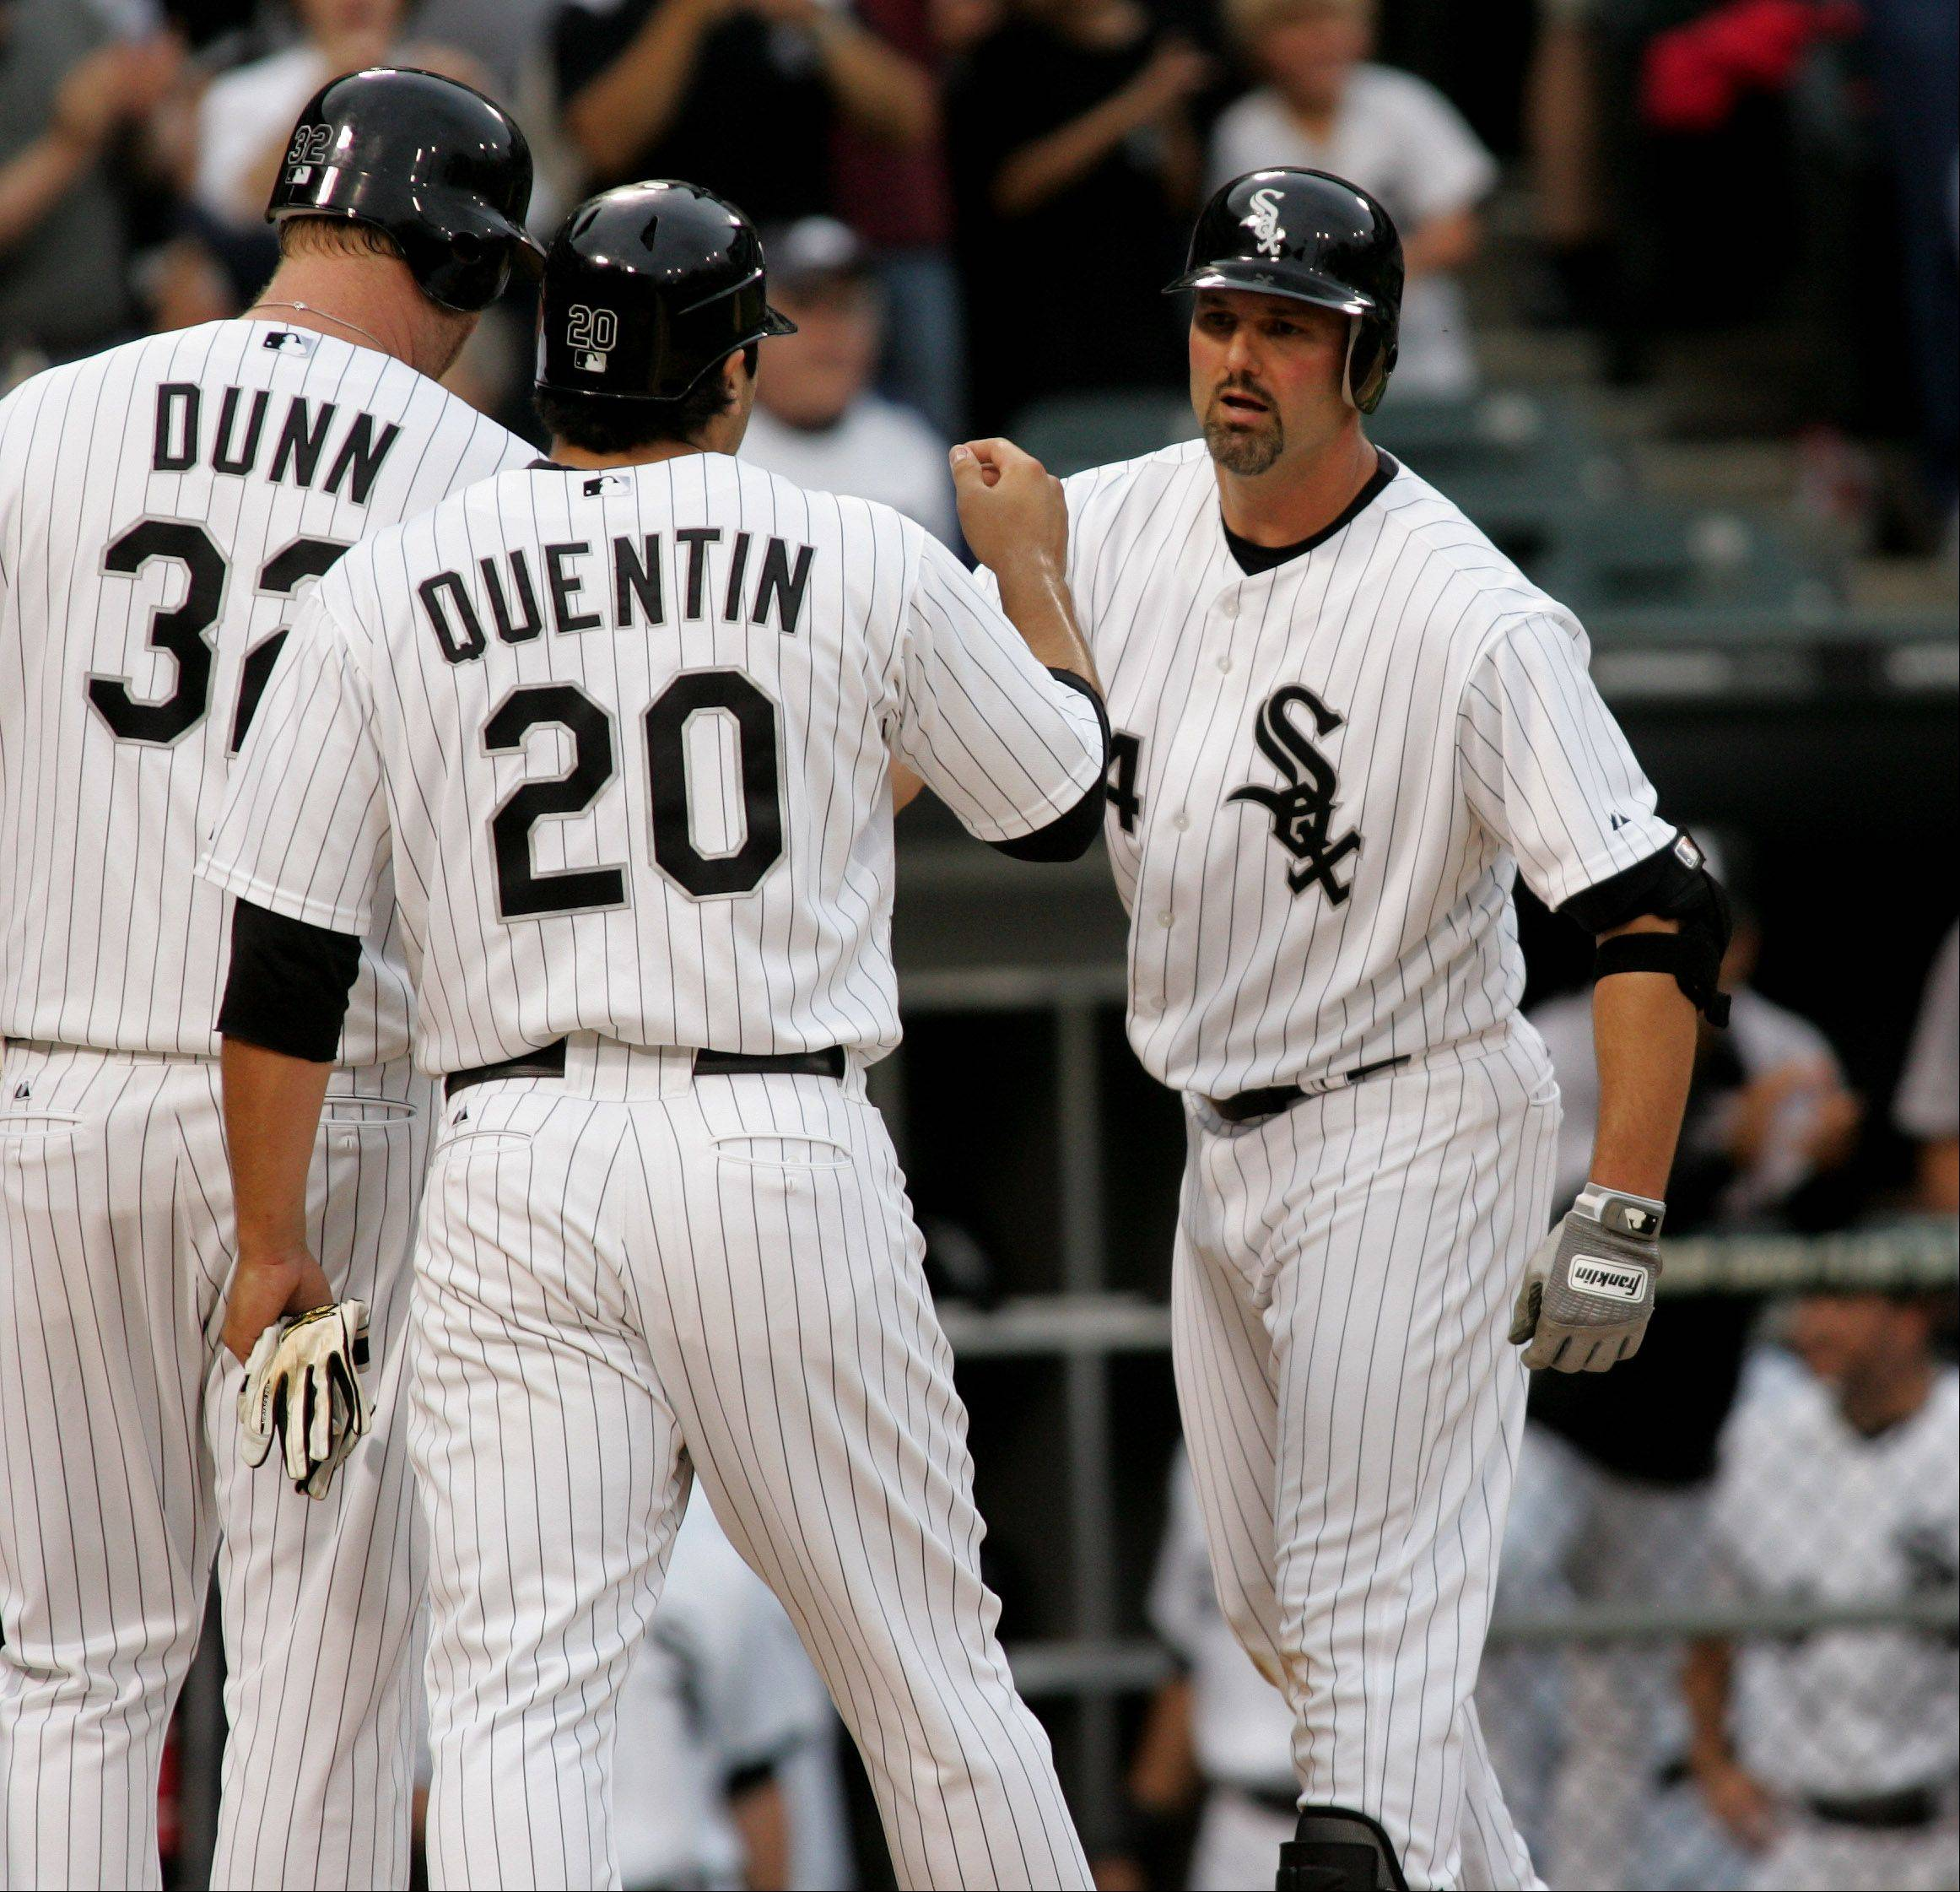 Paul Konerko's first inning home run.